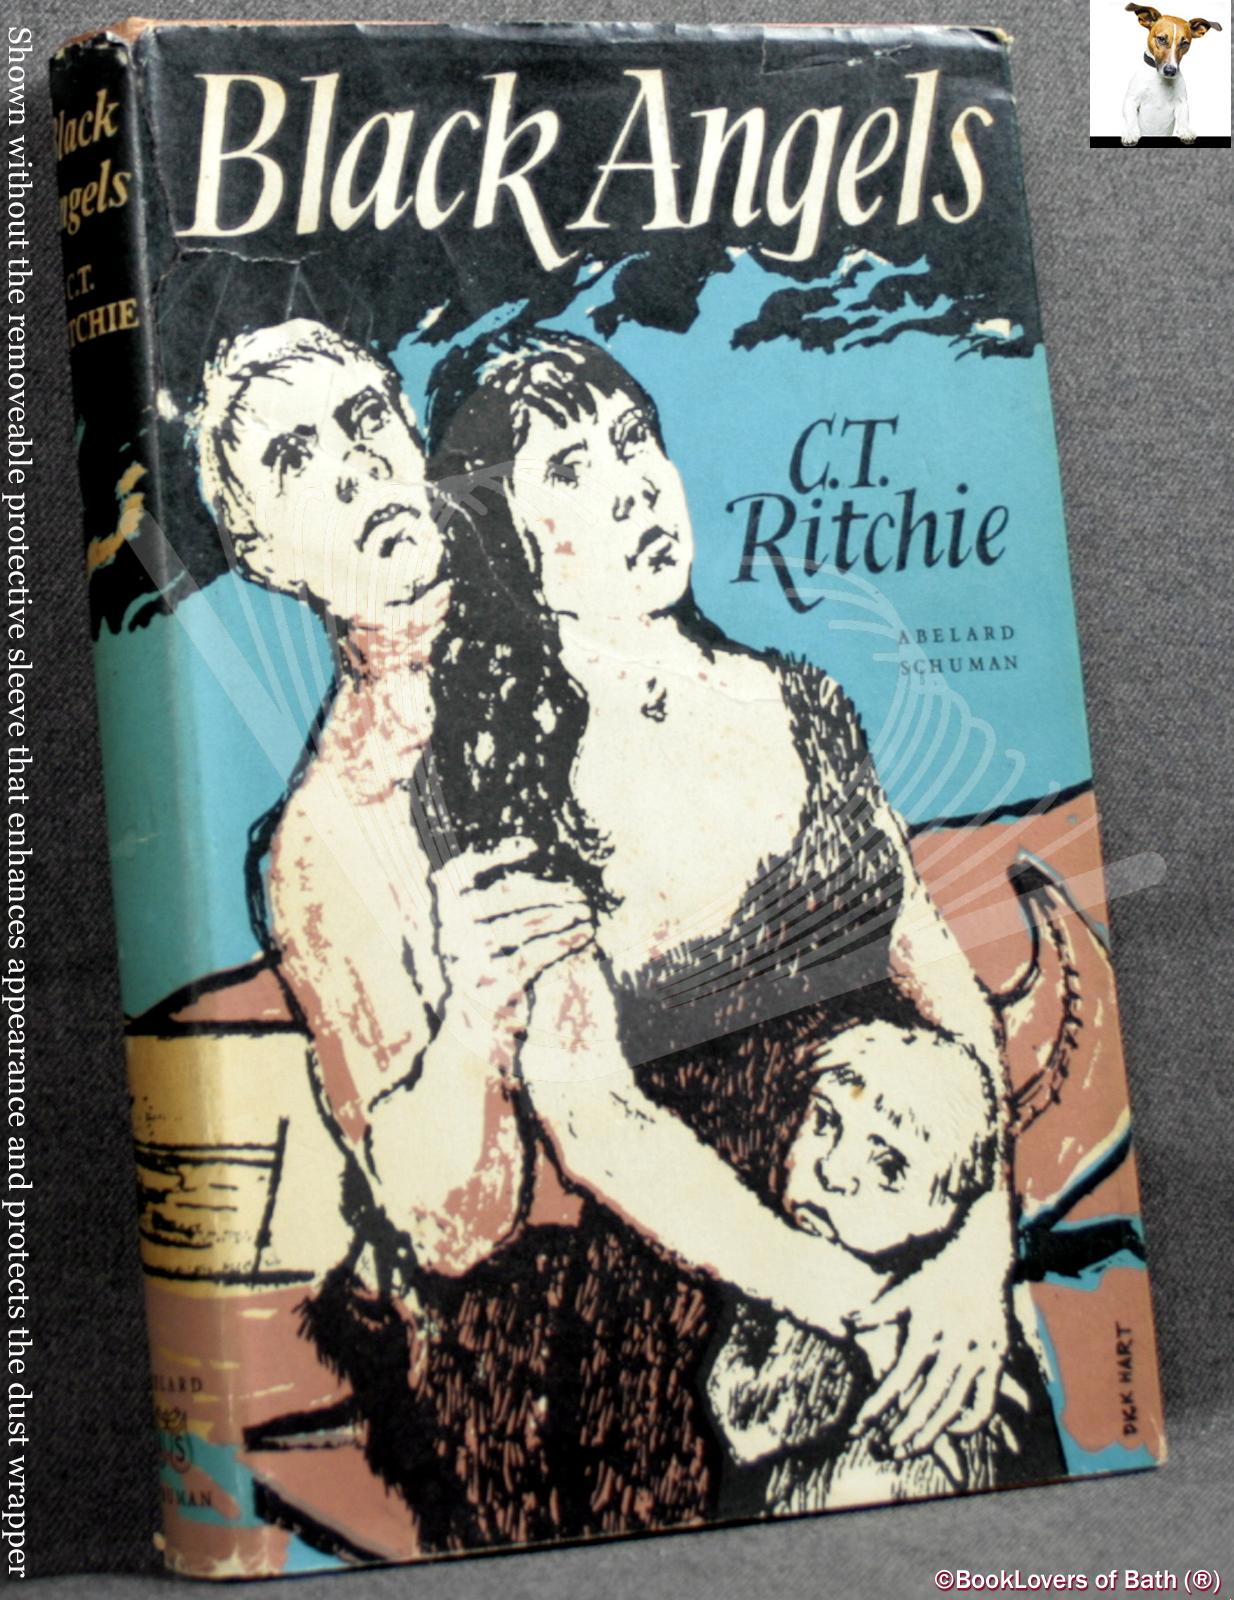 Black Angels - C. T. Ritchie